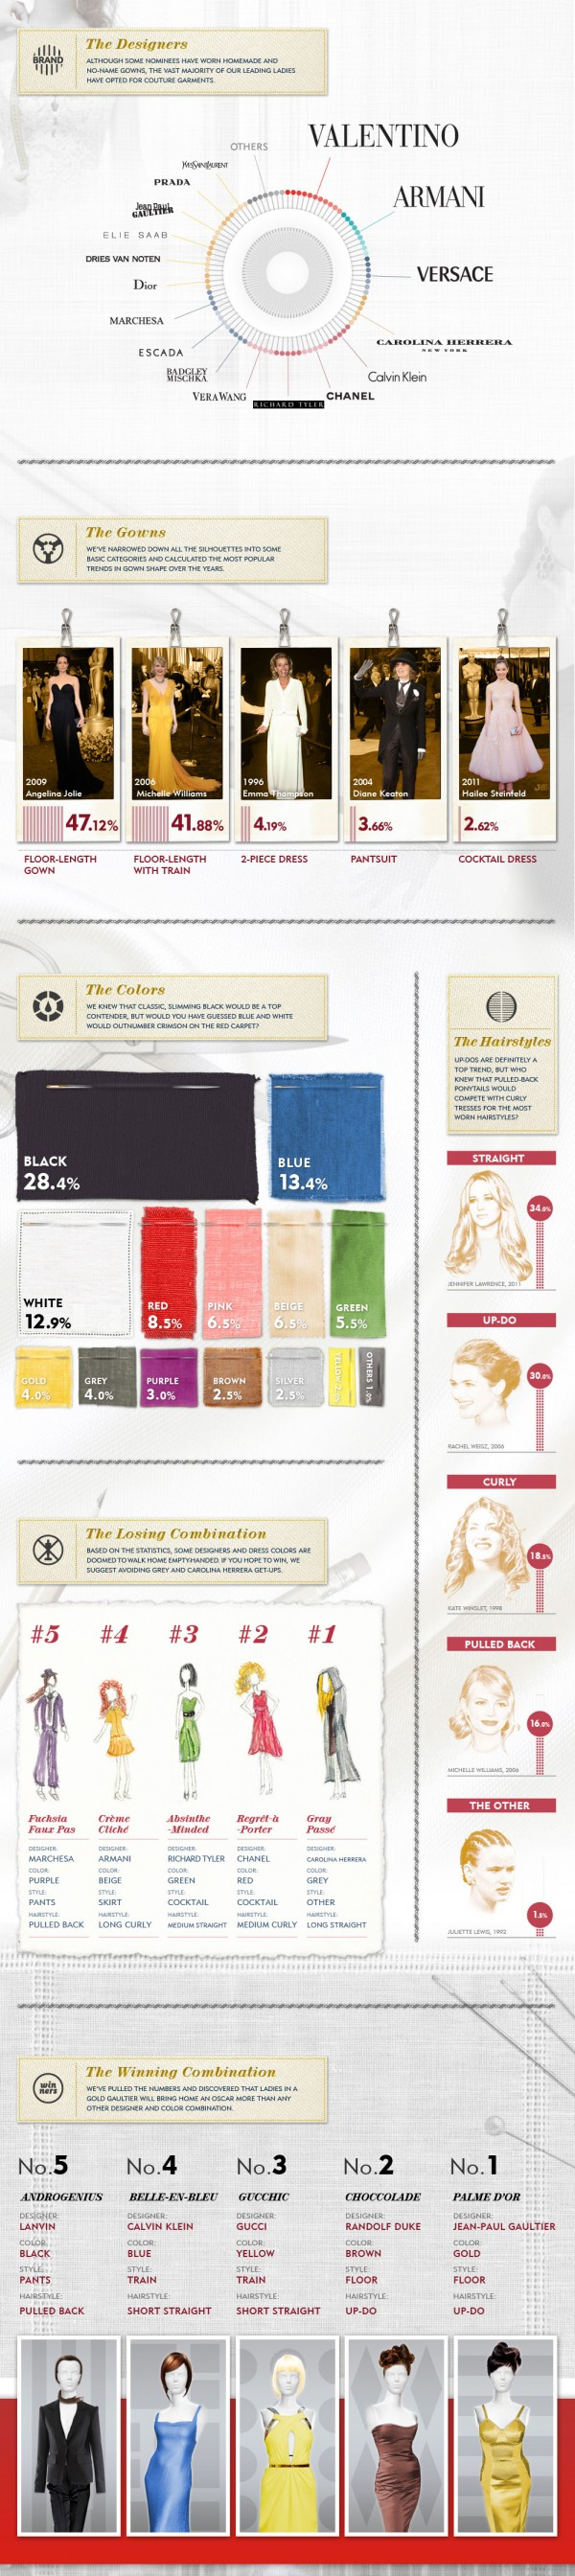 infographic-women-at-the-oscars-1-600x2688.jpg